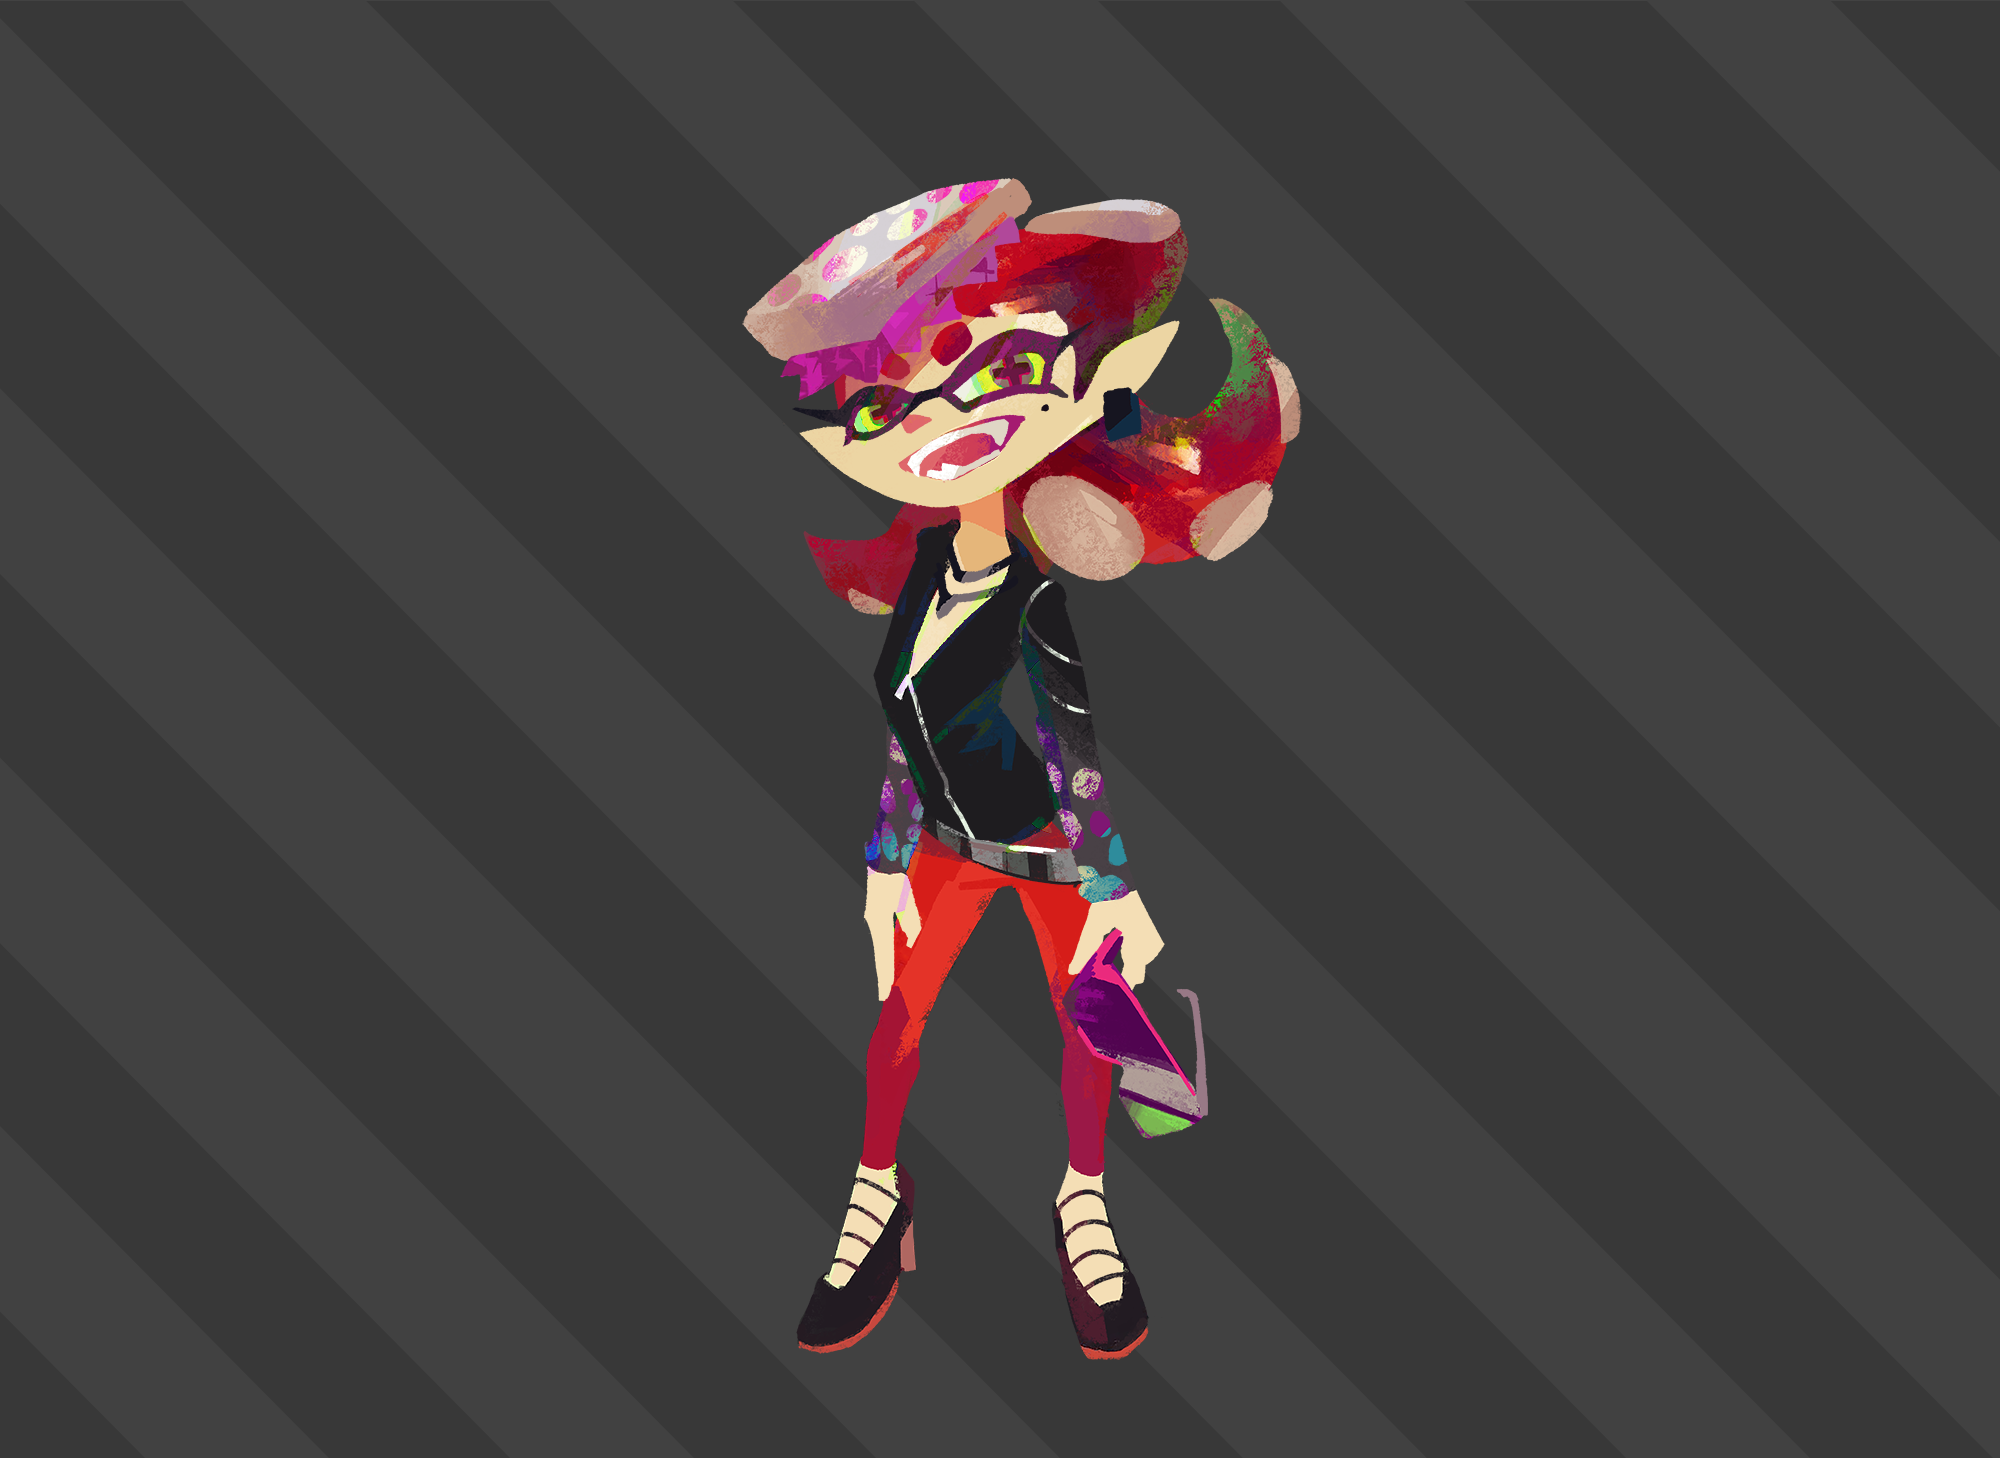 Octo-Callie by Zesiul